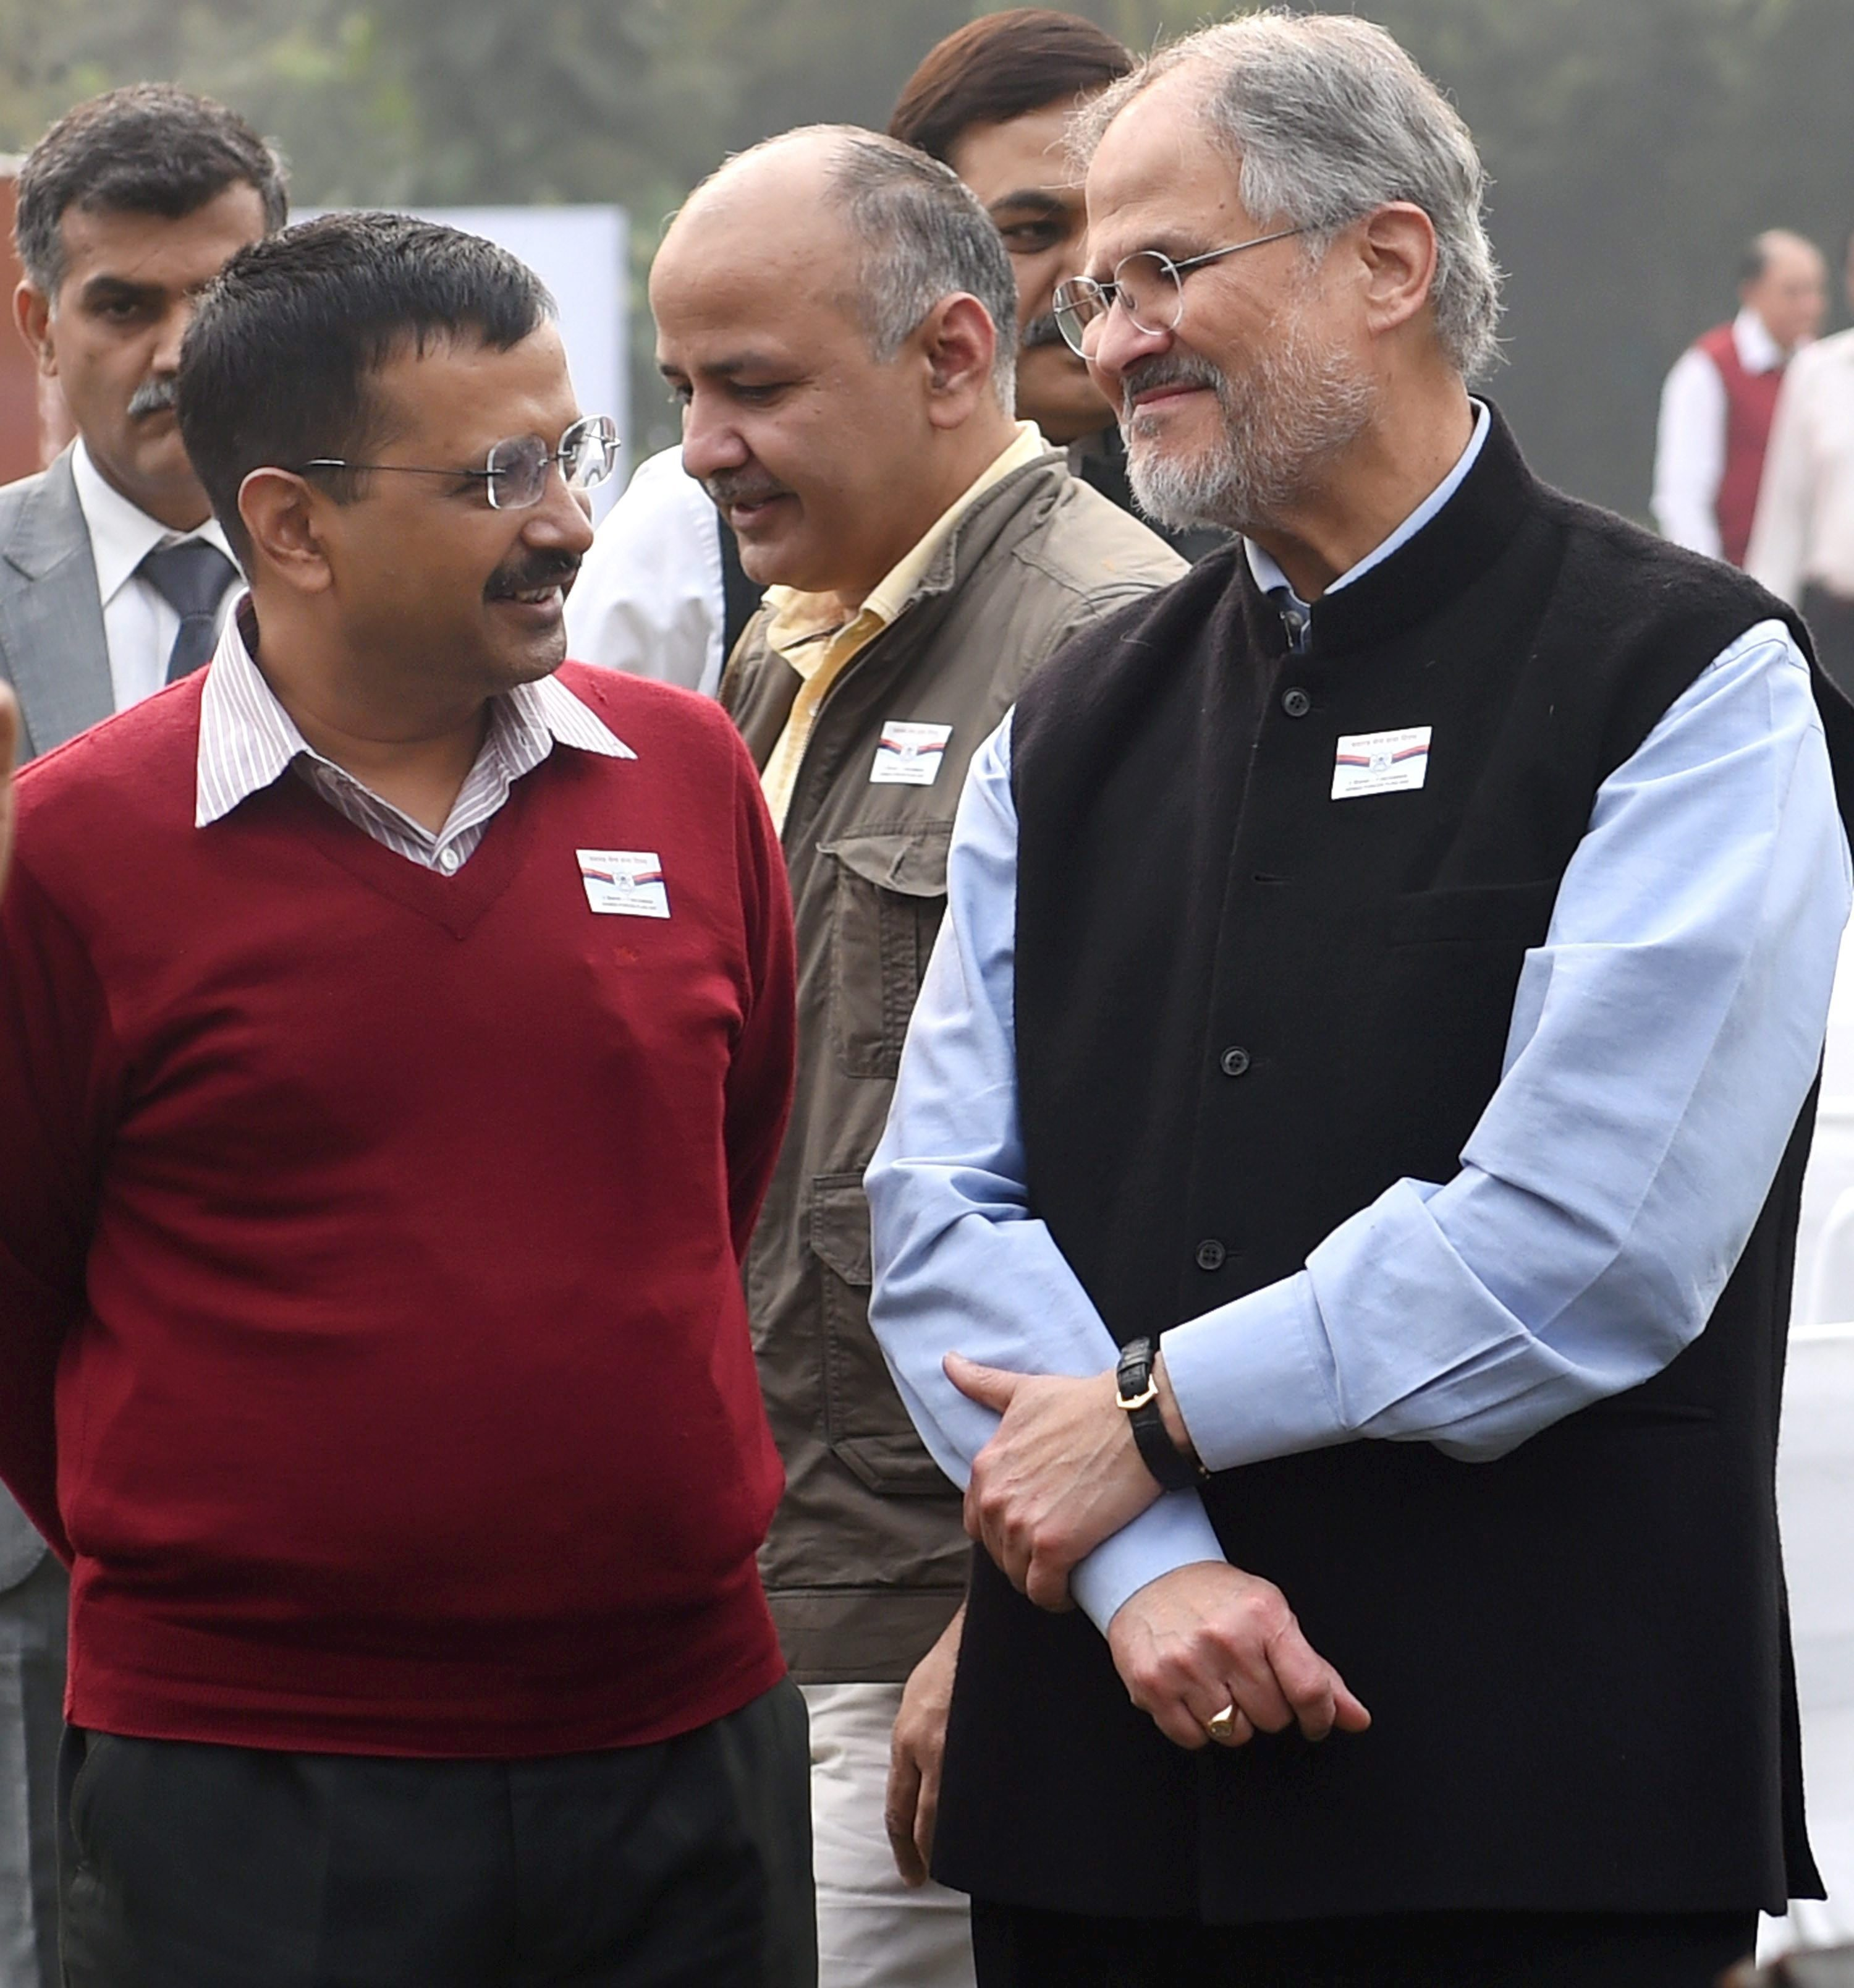 Delhi Chief Minister Arvind Kejriwal with outgoing Lt Governor Najeeb Jung. Image credit: PTI